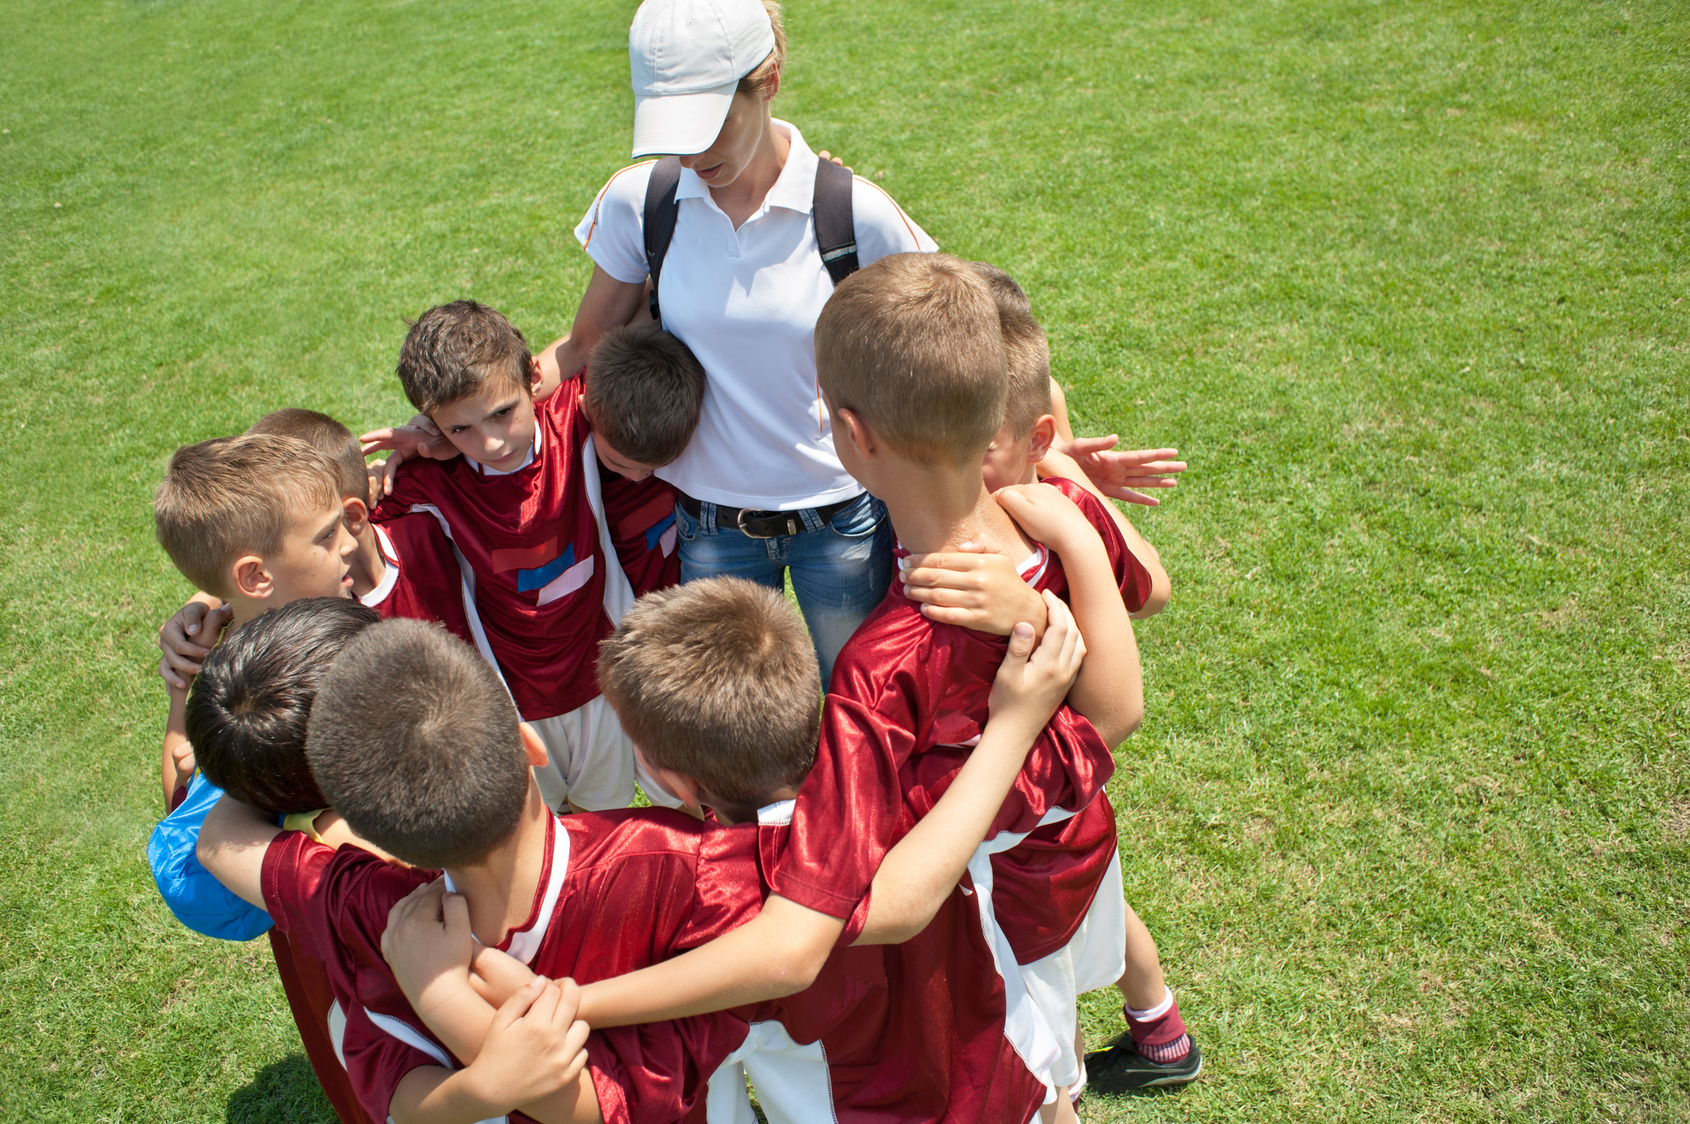 an analysis of parents involvement in youth sports and athletic programs La galaxy president chris klein: guidelines for parental involvement in youth sports 17 feb la galaxy president chris klein: guidelines for parental involvement.